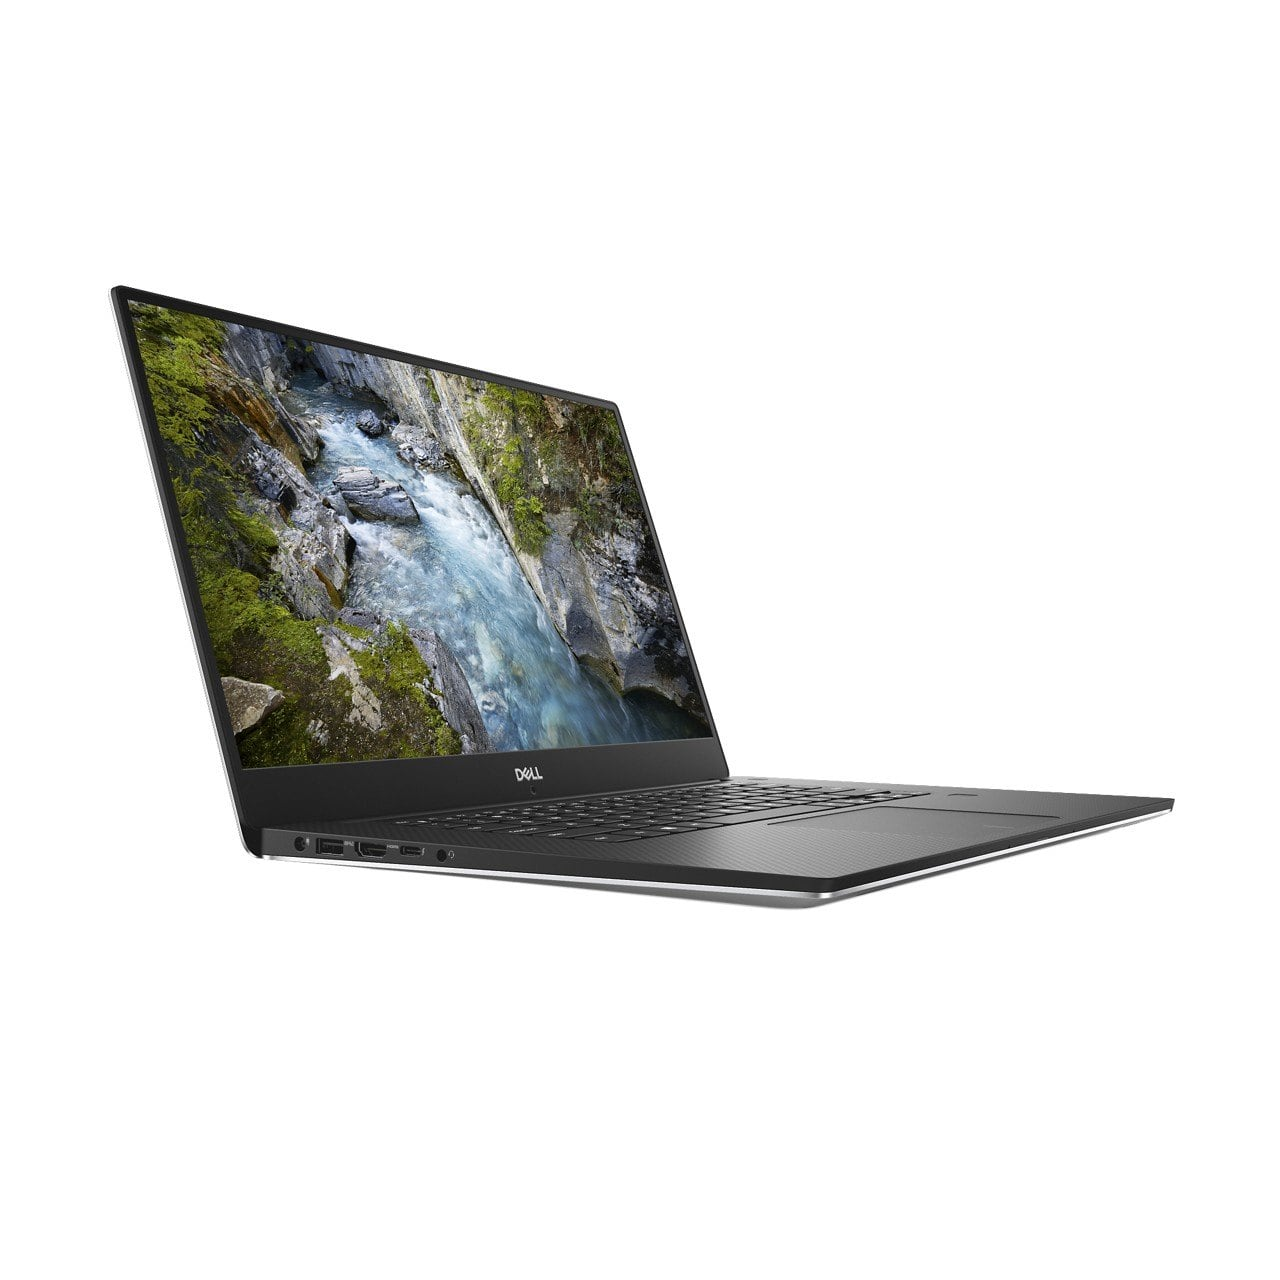 Dell XPS 15 9570 Laptop Intel i5 8300H 256GB SSD 8GB RAM: $879.99 AC + FS + $62.22 Back in Rakuten Super Points (Other Model Available)